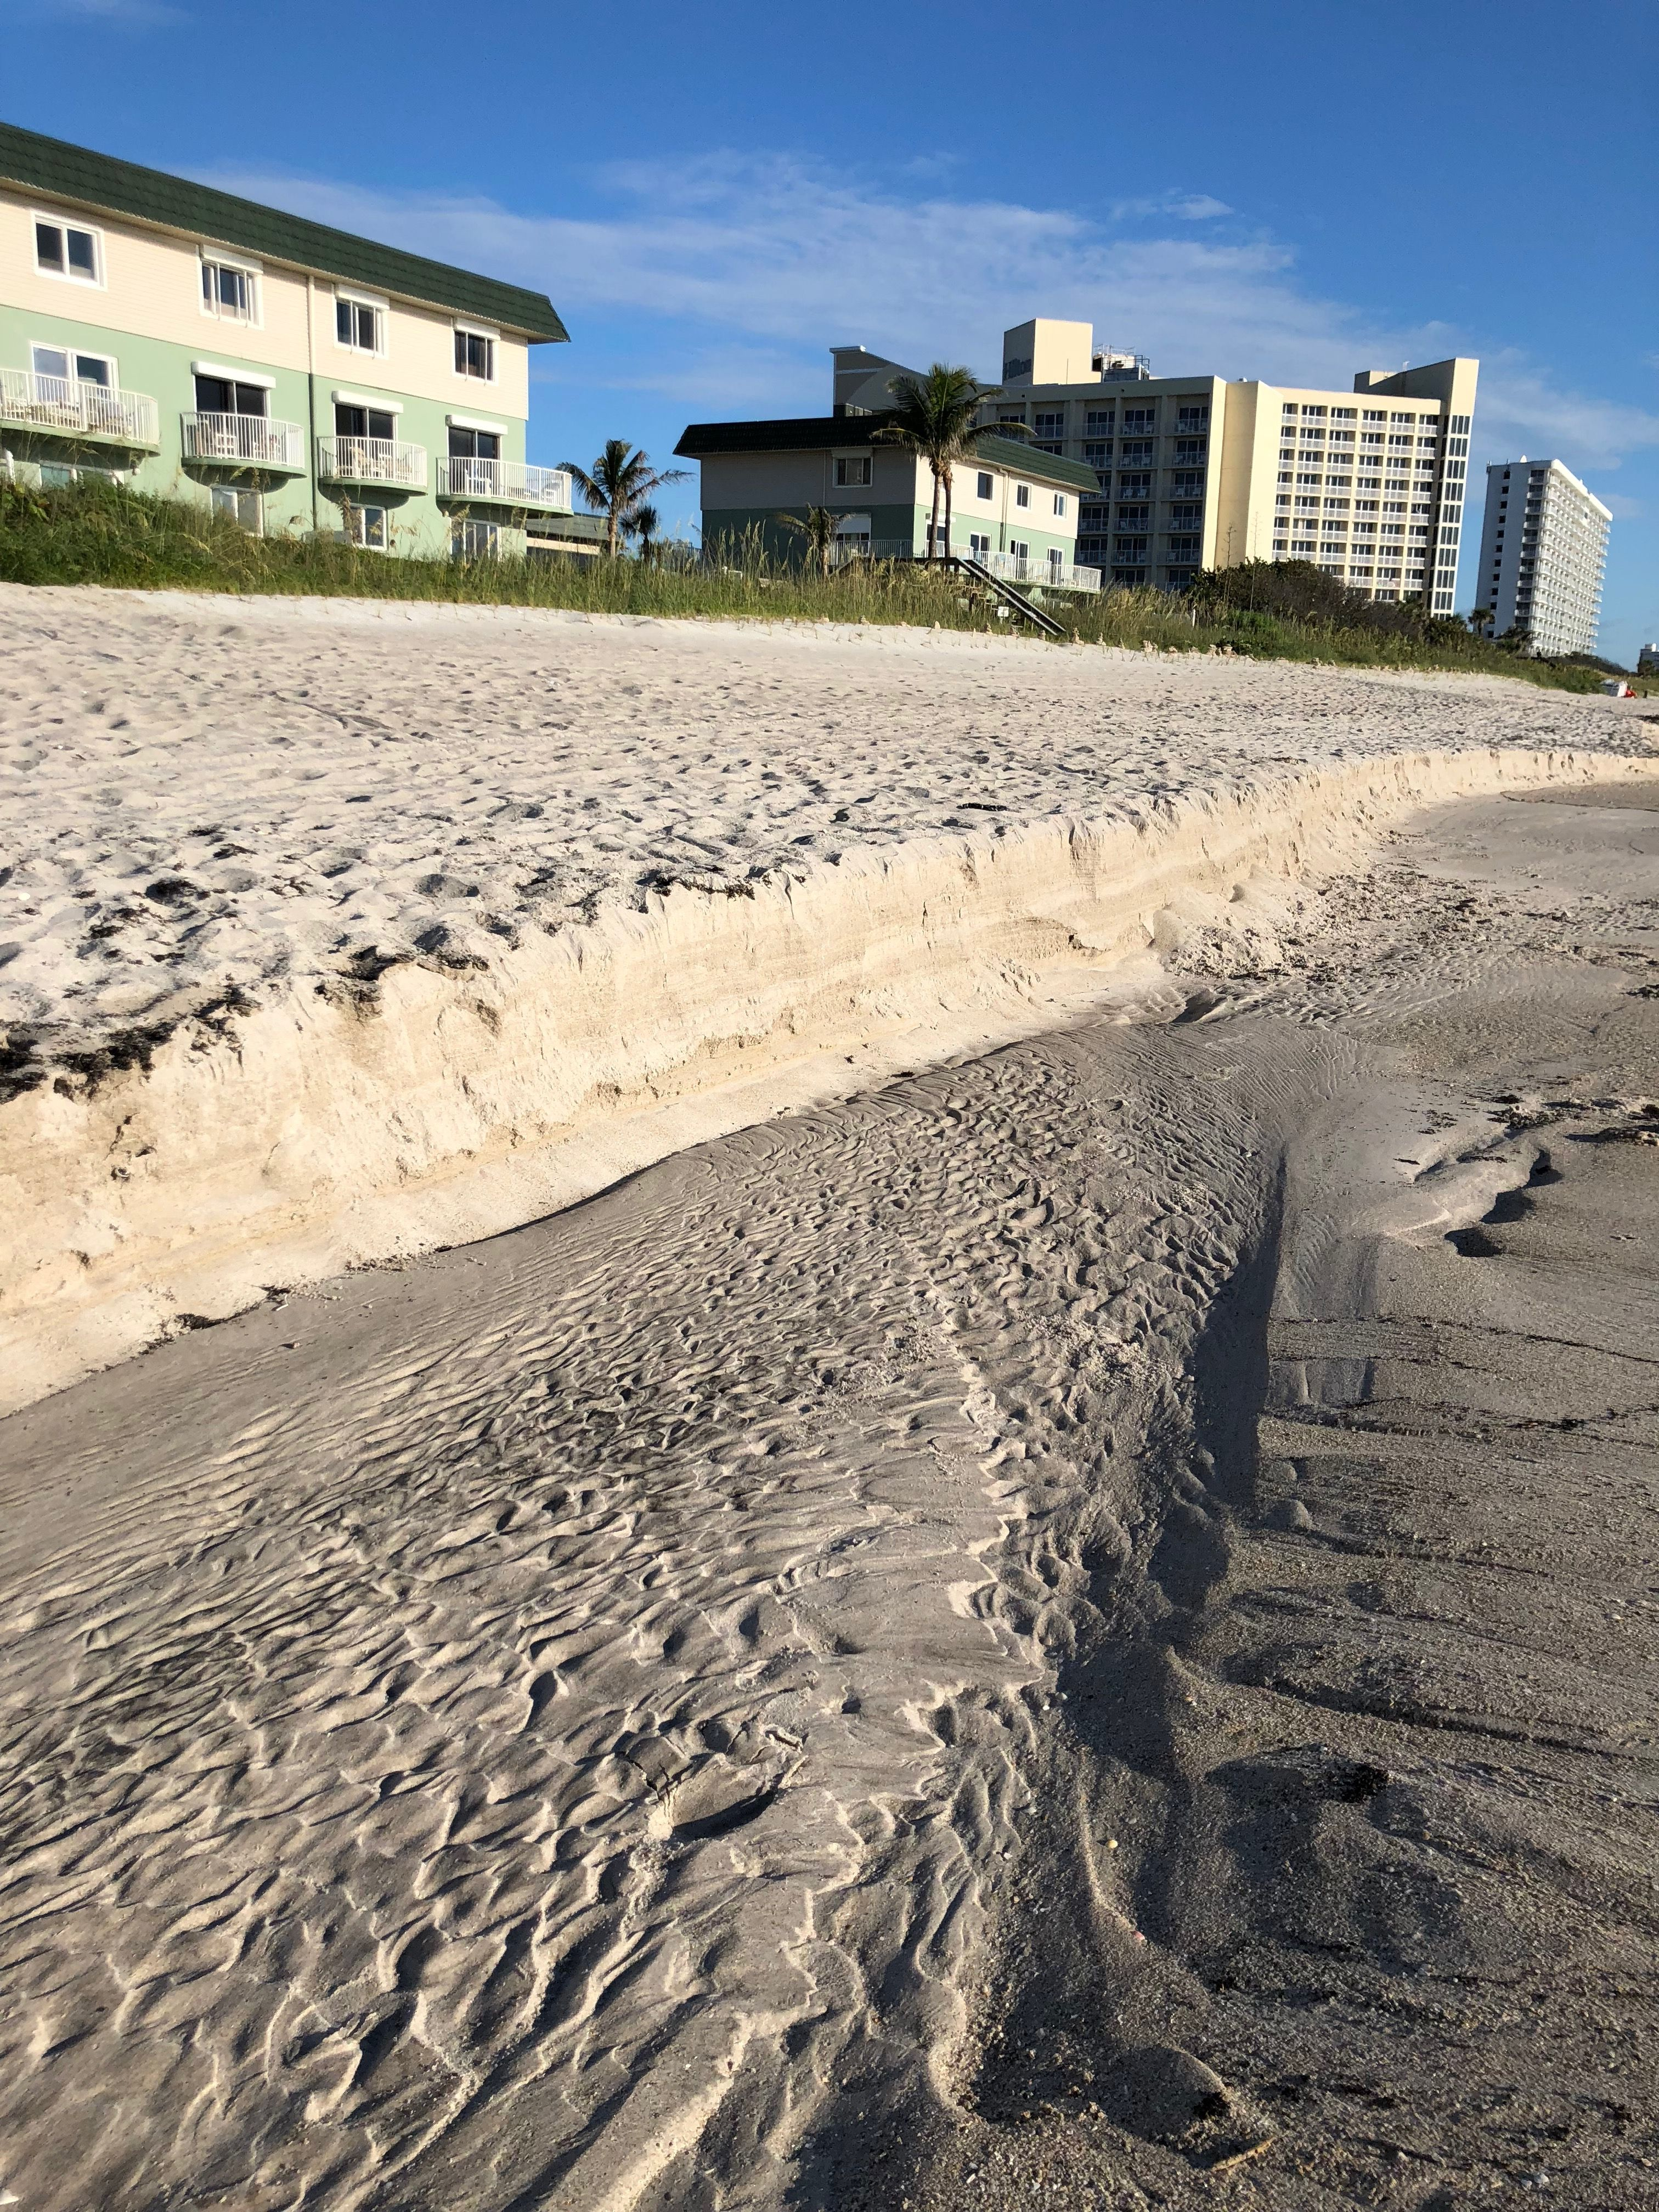 Pin By Amy Ander On Florida Outdoor Beach Florida